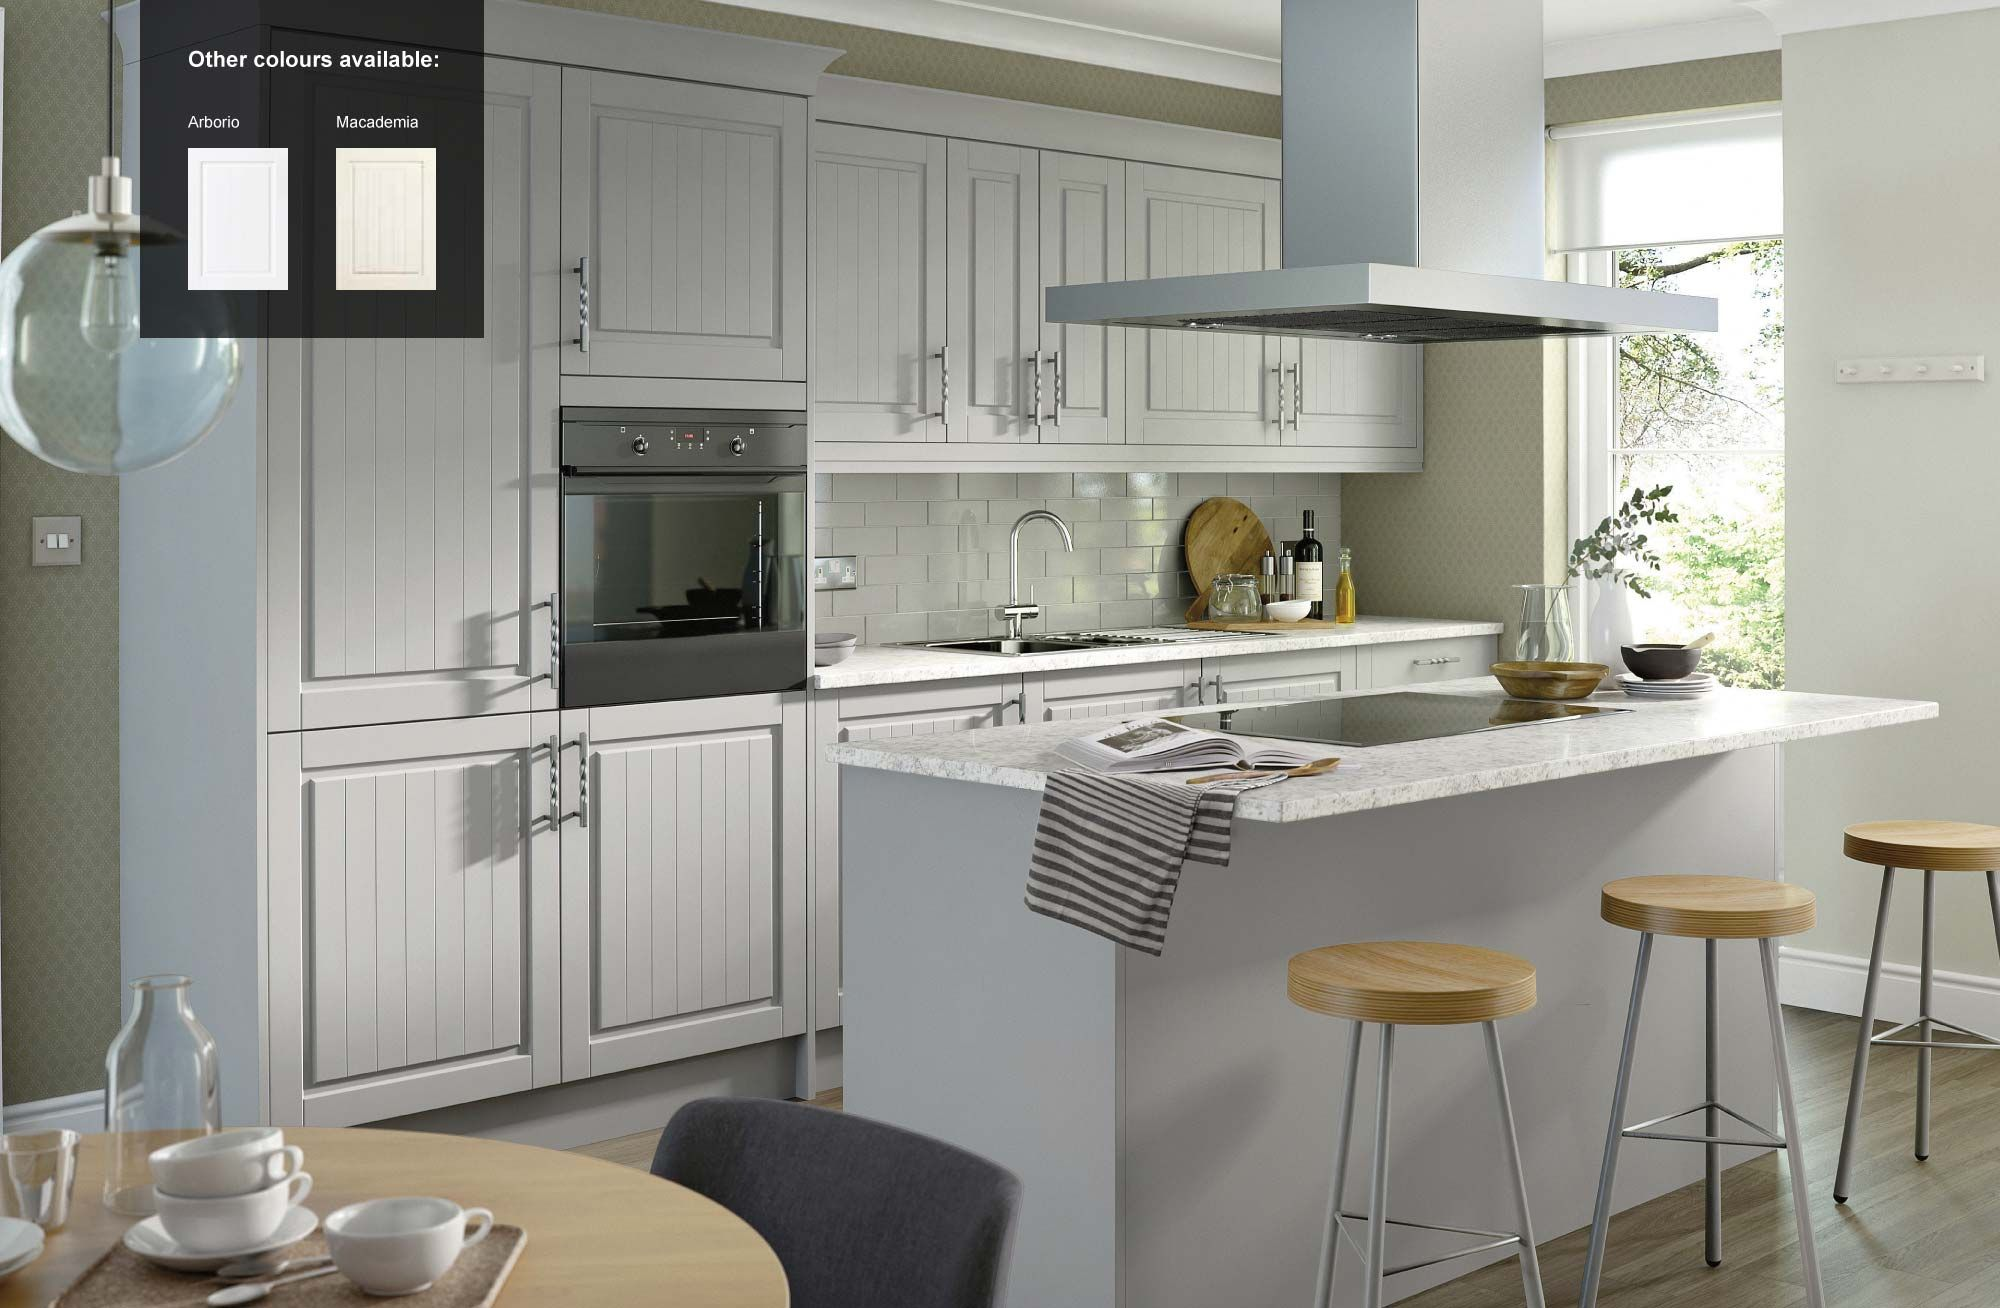 Inspiration Gallery at Homebase.co.uk Kitchen remodel